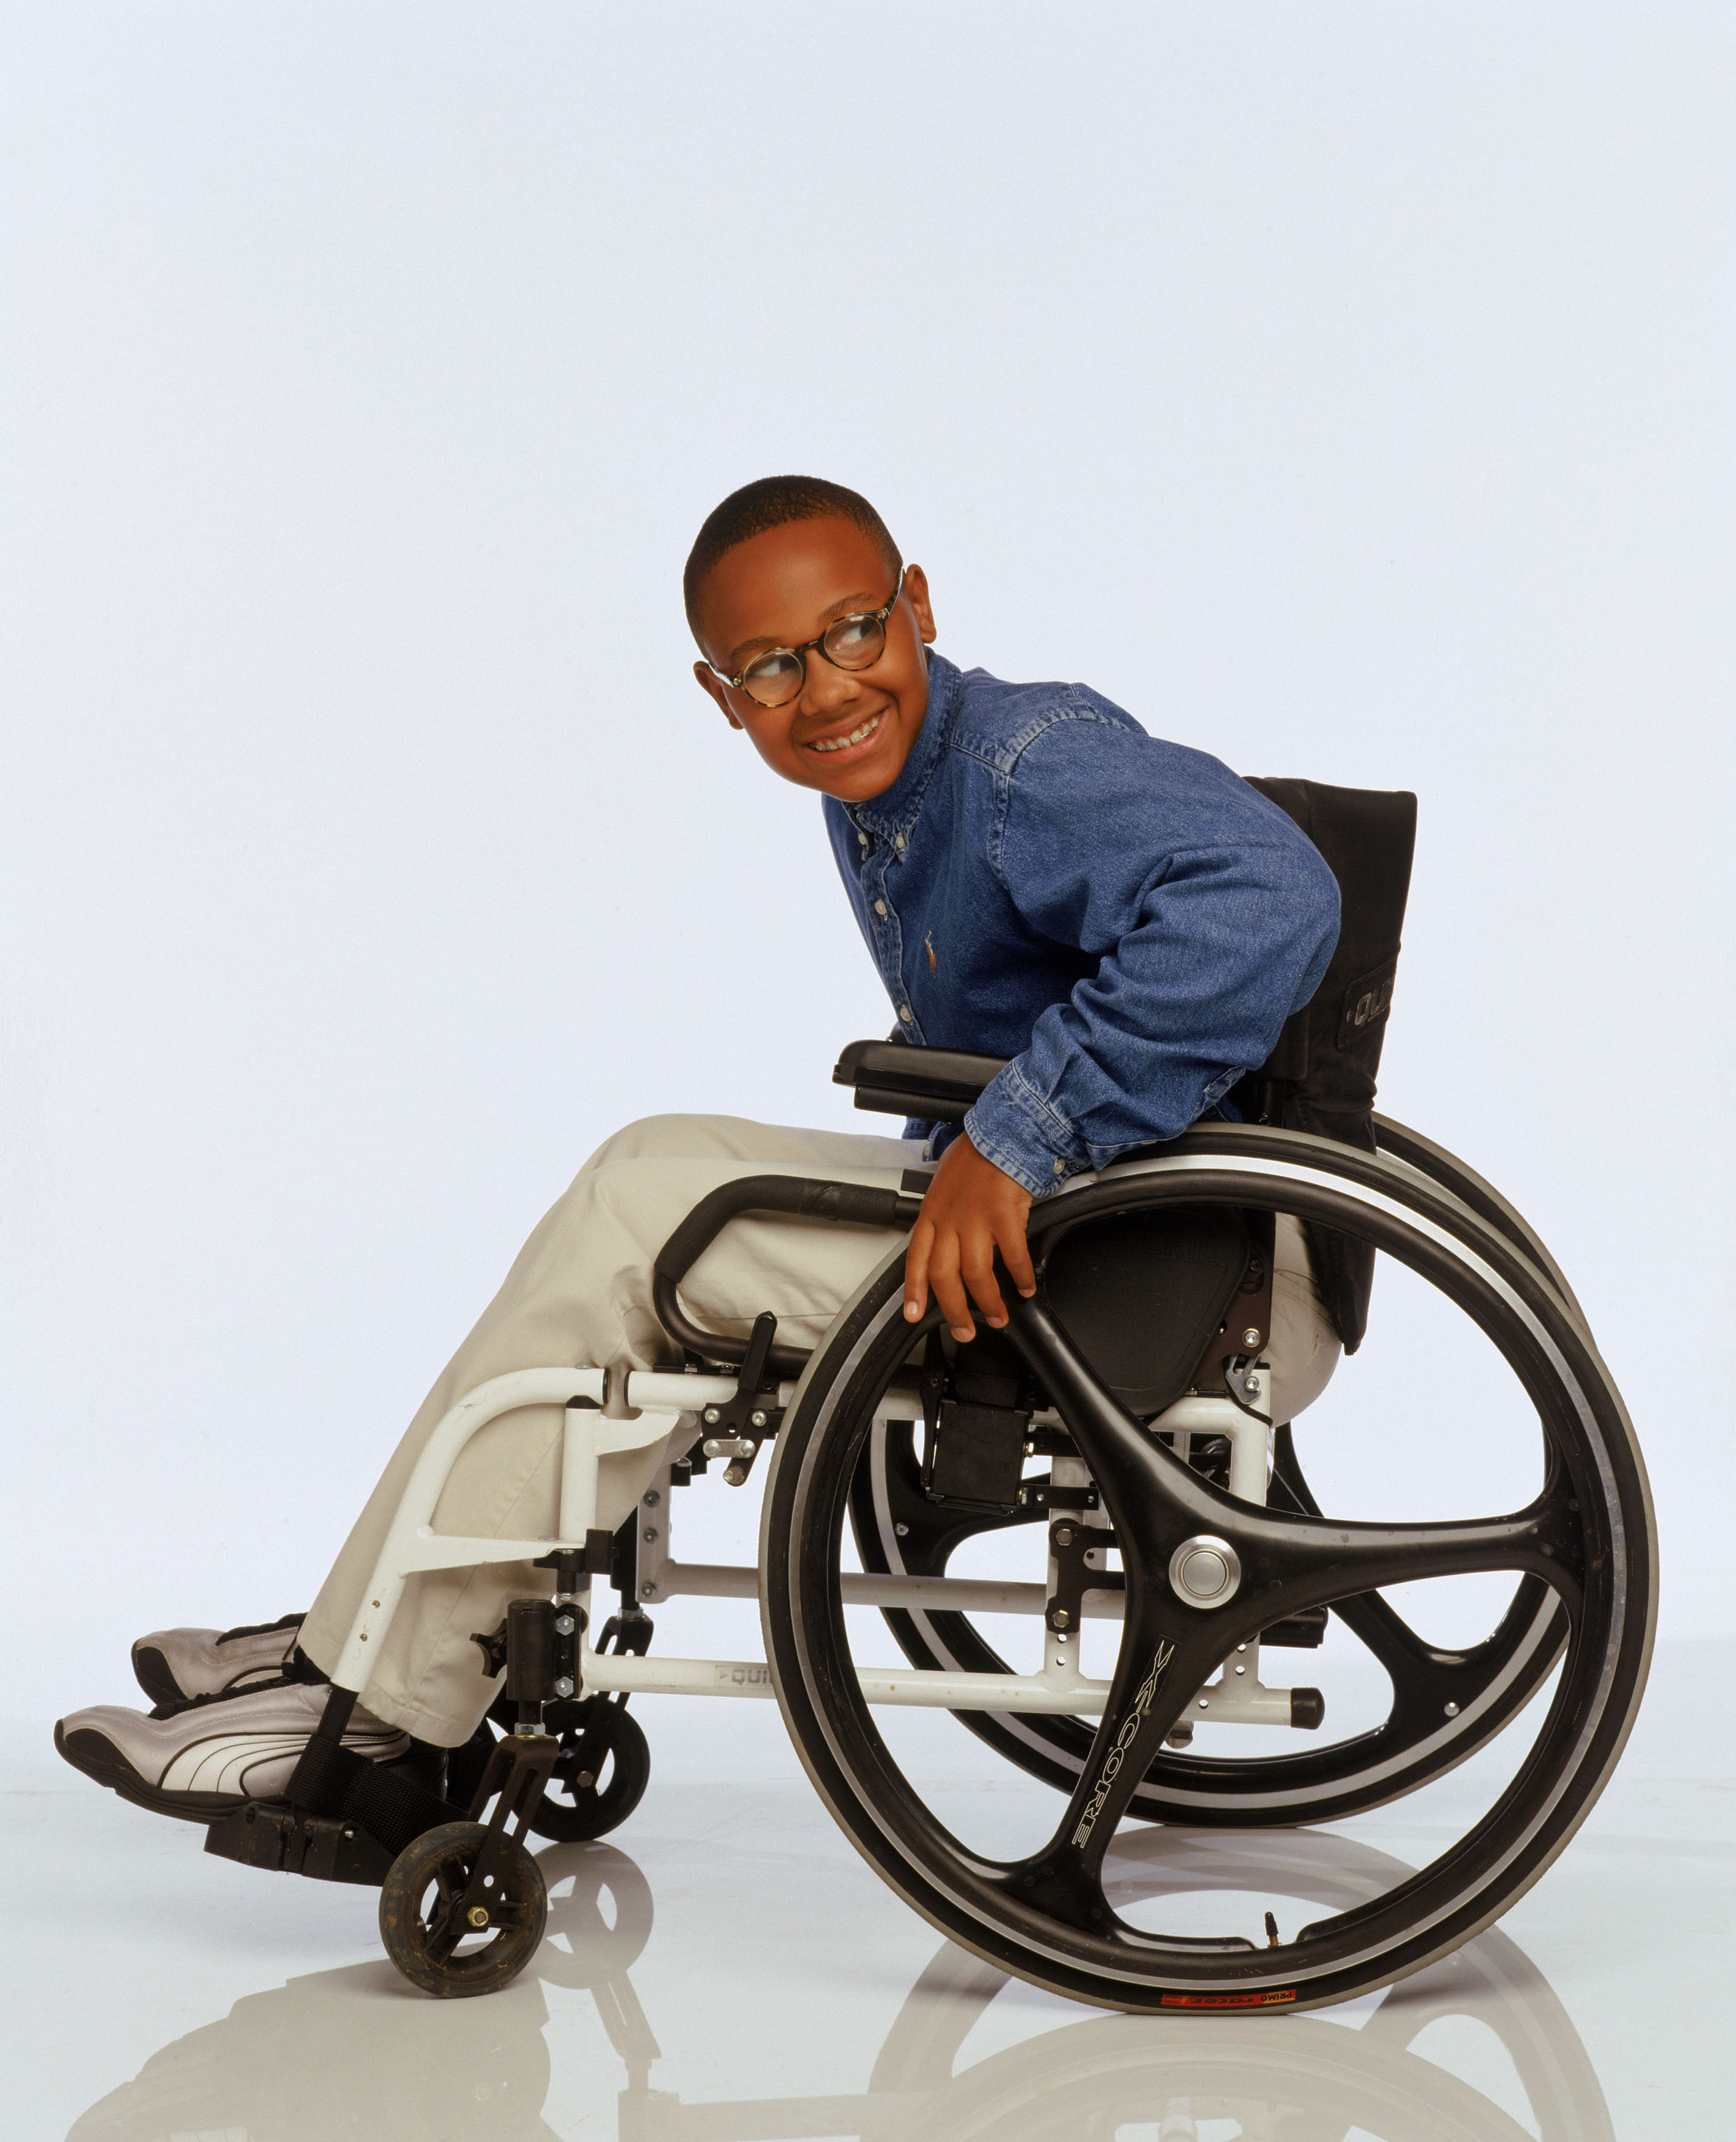 Black Wheelchair Kid Malcolm Middle